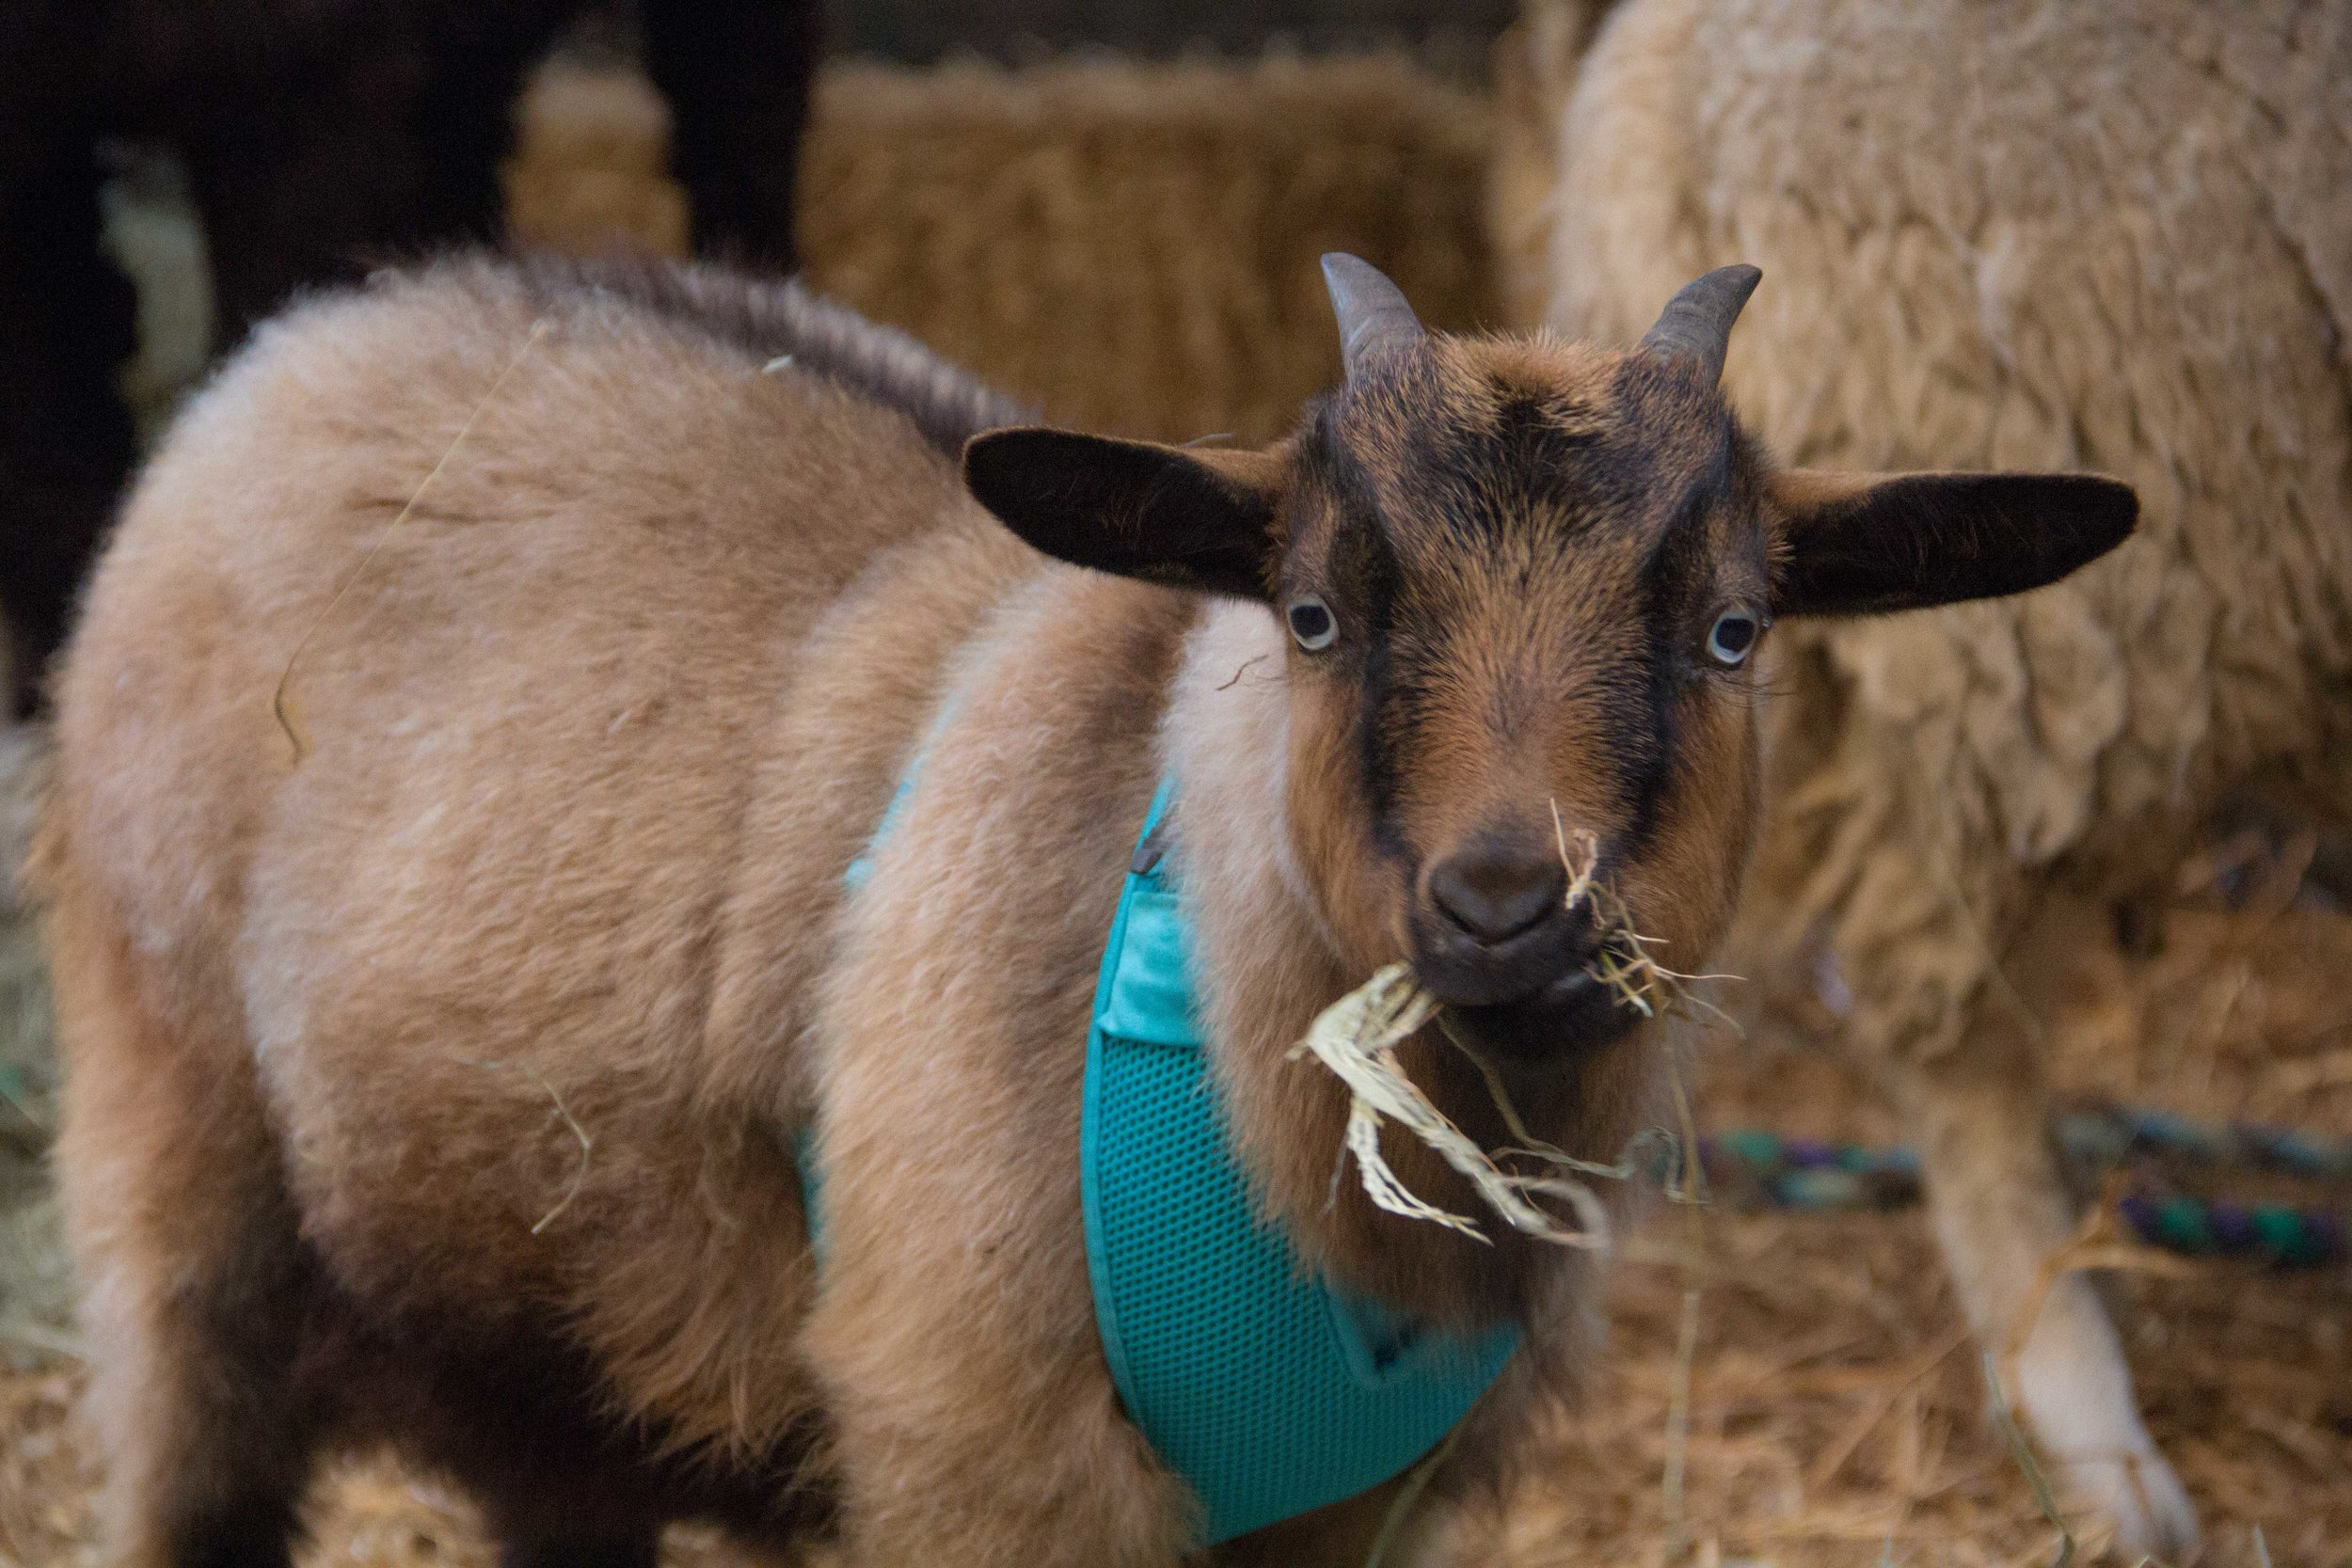 Tiny goat named Hershey at Boulevard UMC live nativity